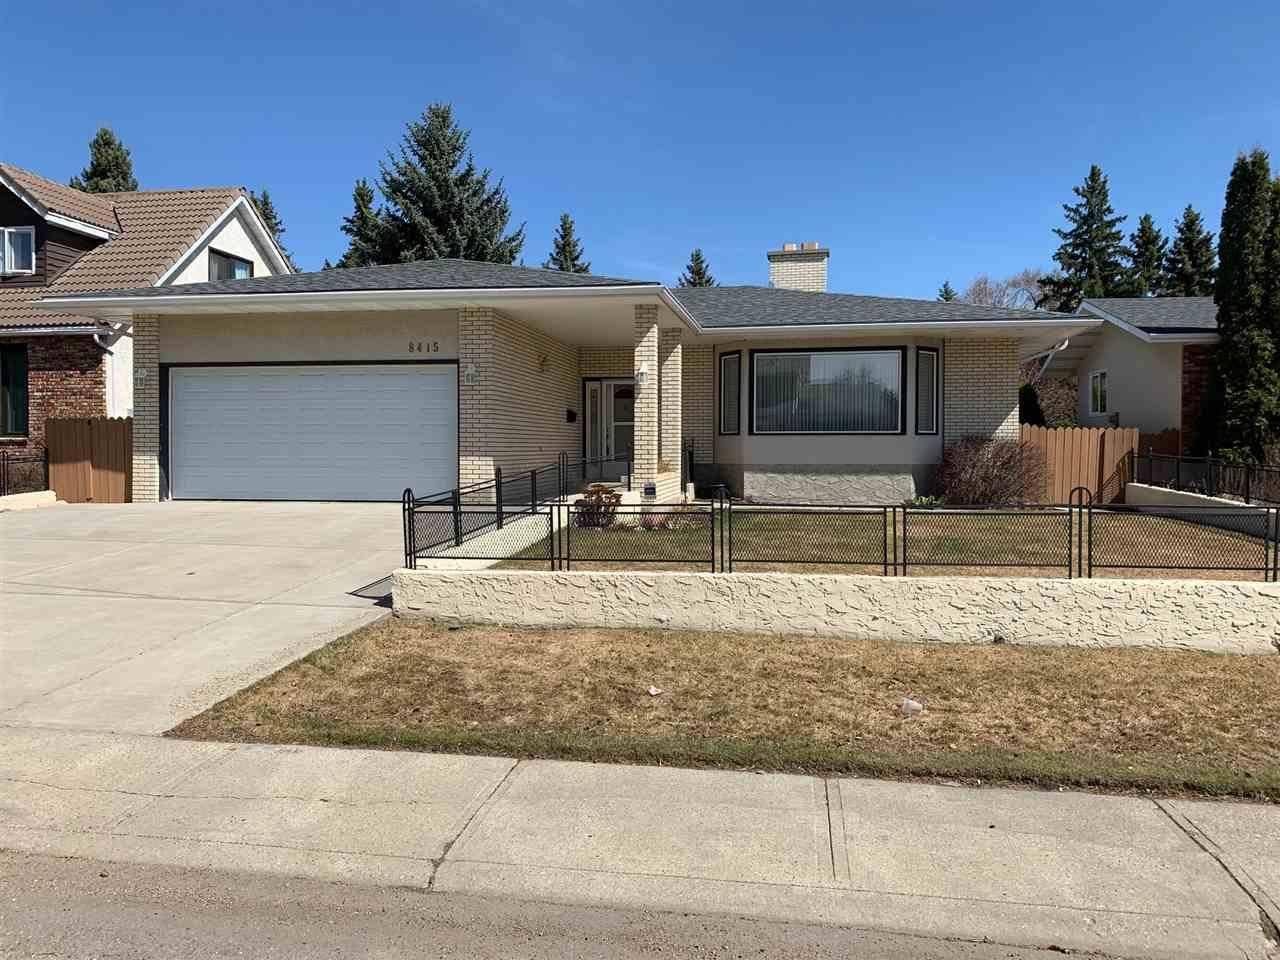 House for sale at 8415 186 St Nw Edmonton Alberta - MLS: E4193241